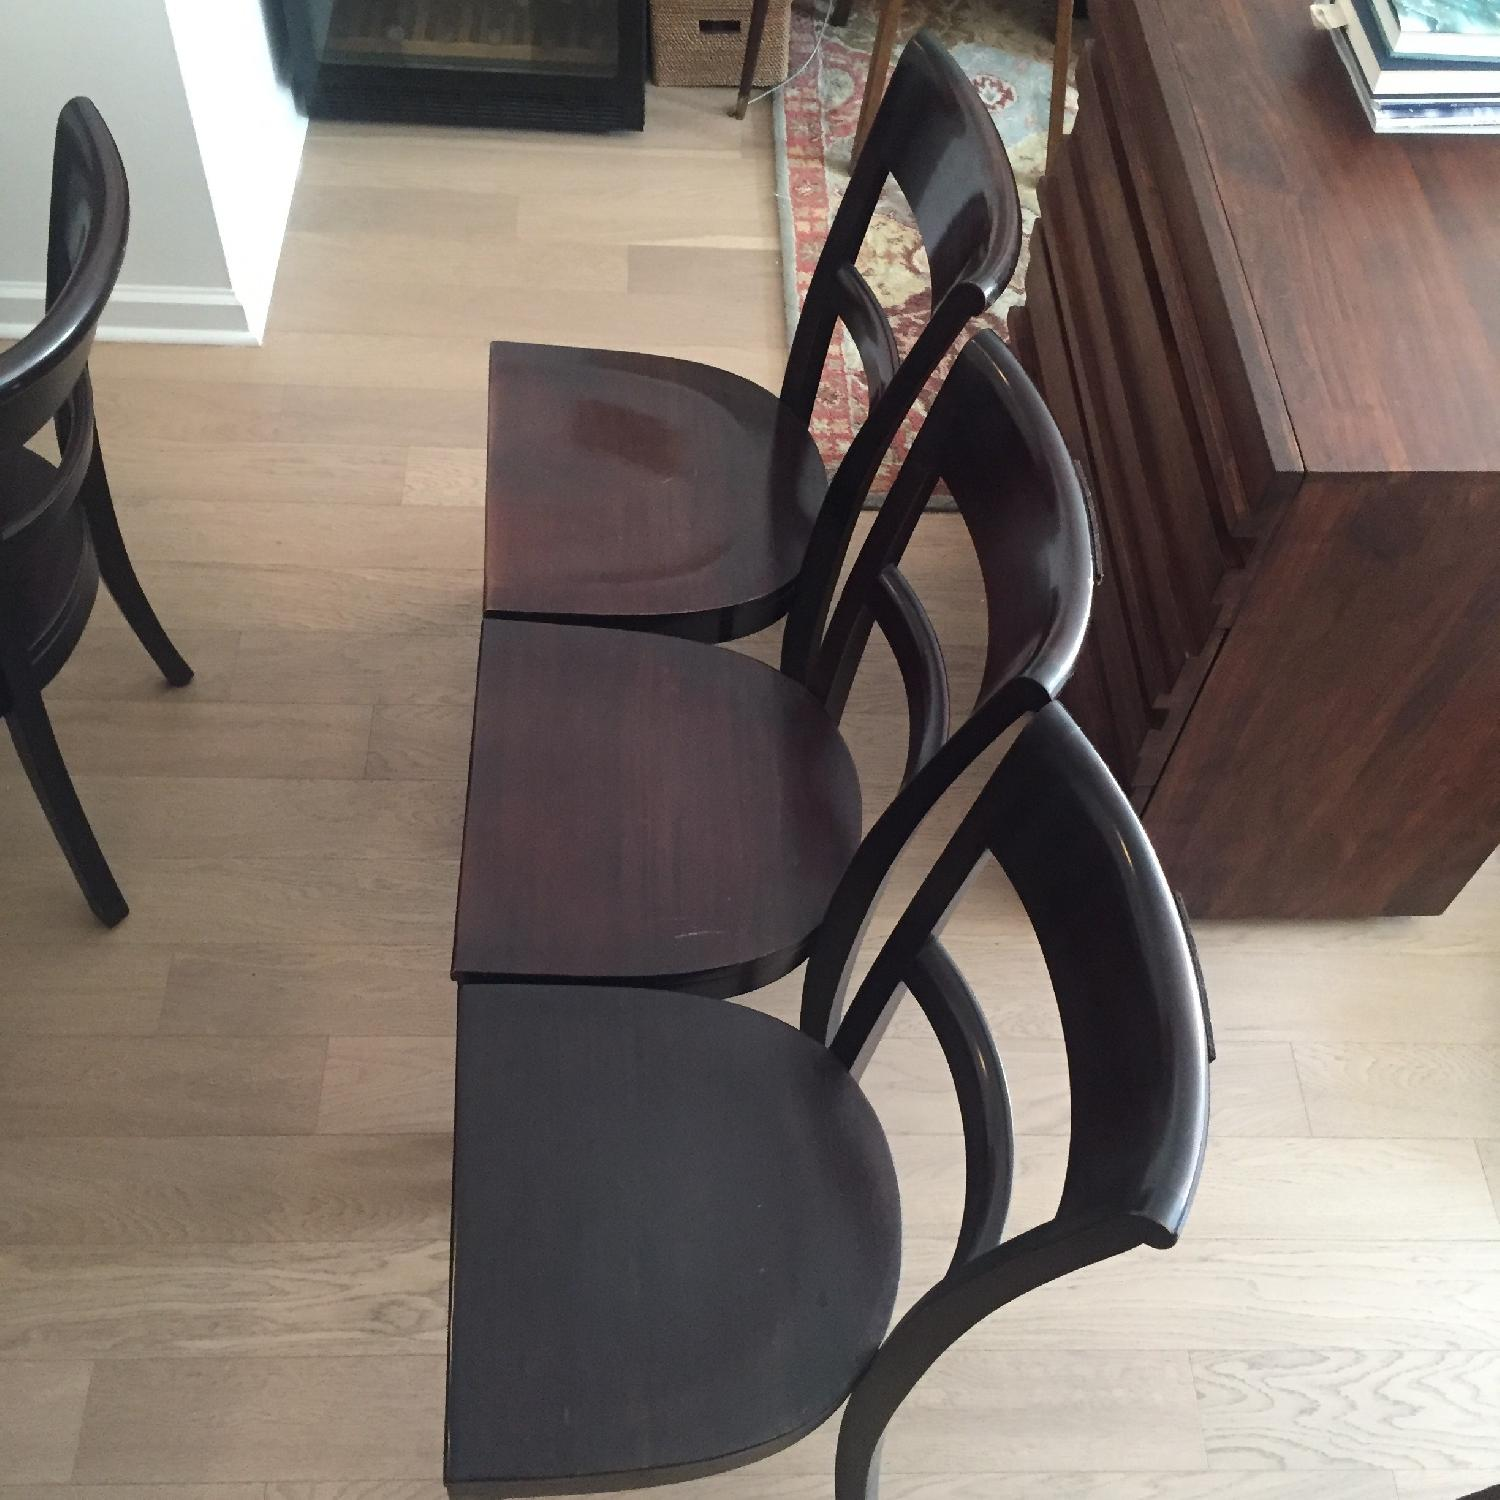 Crate & Barrel Dining Room Table w/ 6 Chairs - image-7